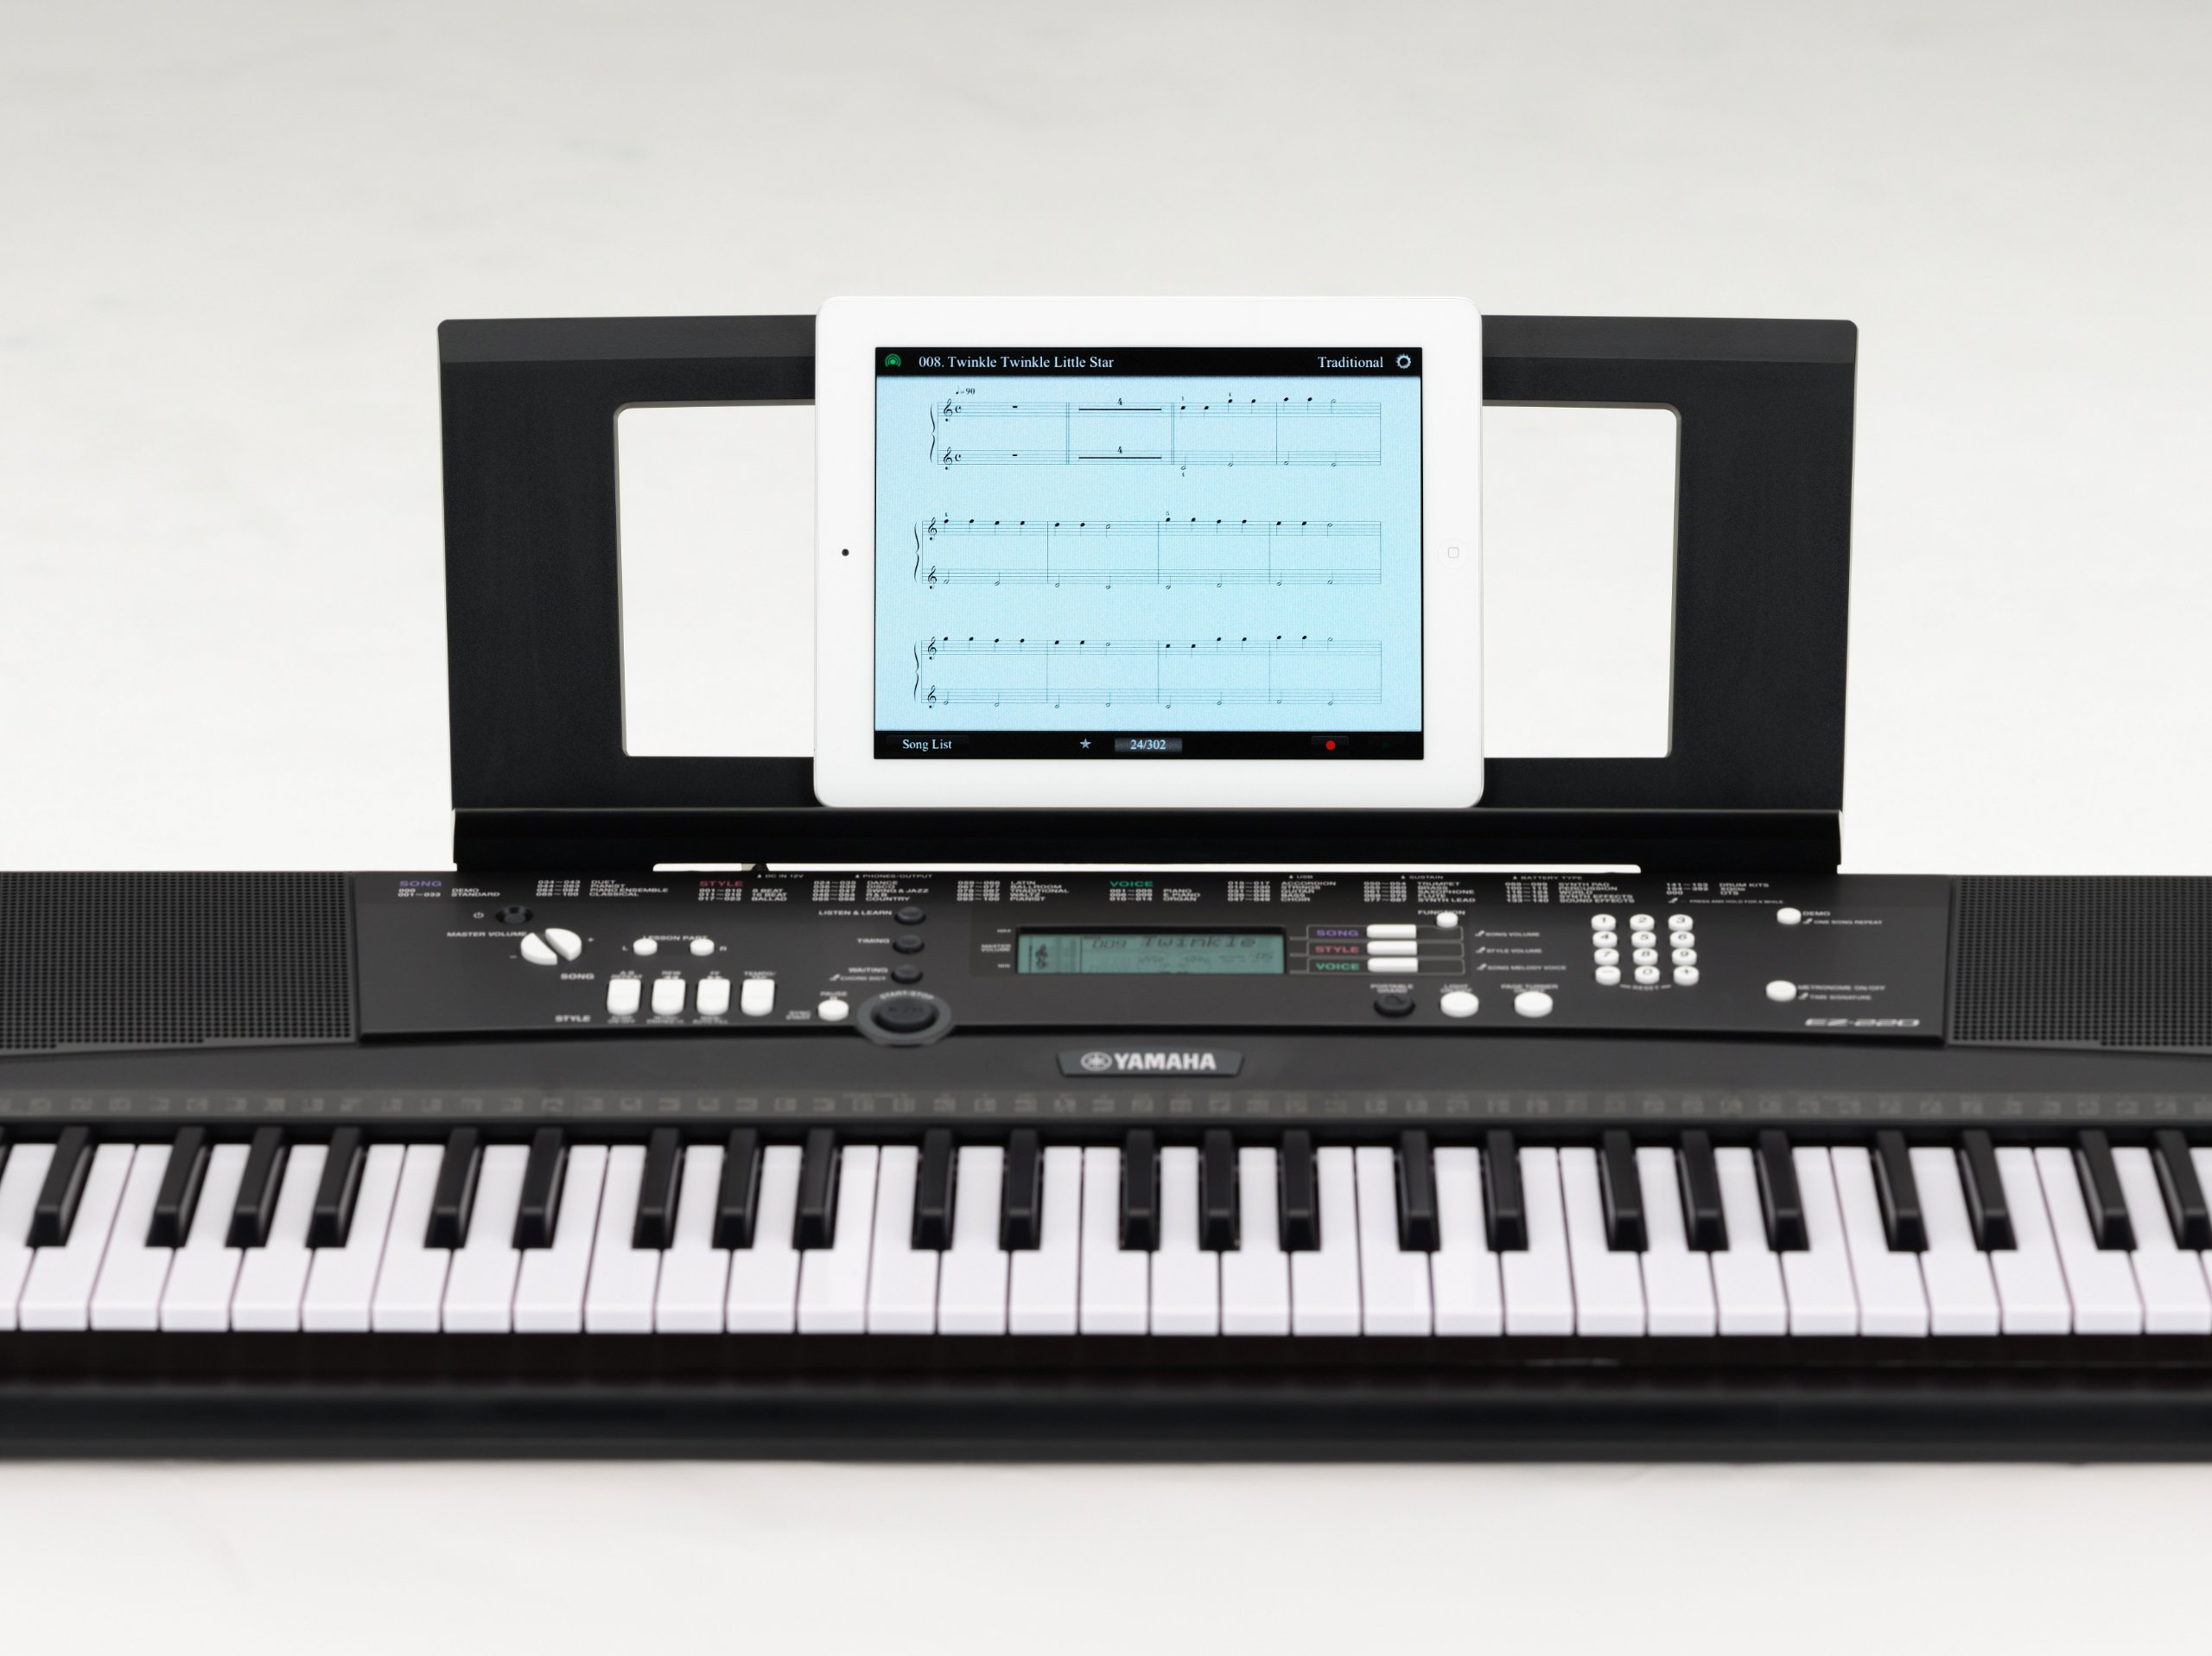 Yamaha EZ220 Keyboard with Lighted Keys - Includes X-Style Stand and Power Adapter by YAMAHA